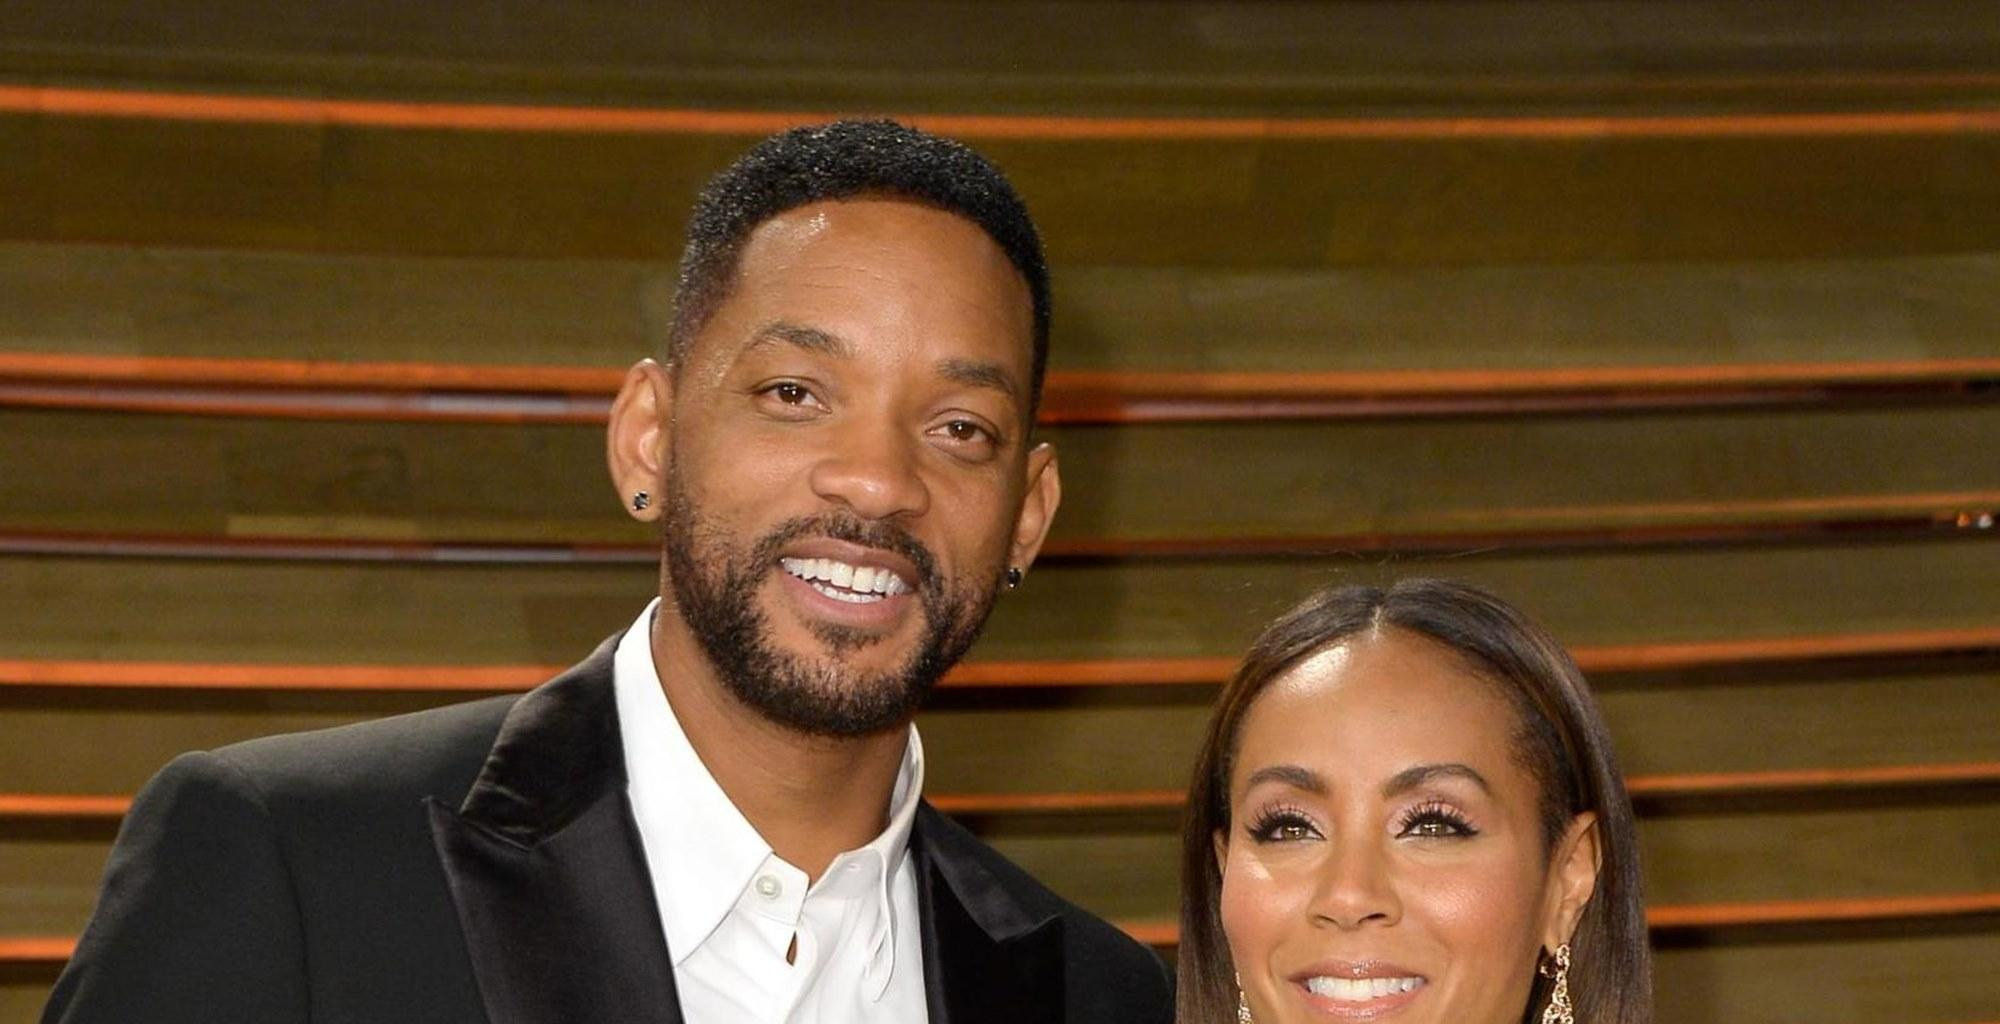 Cardi B's Husband, Offset, Makes This Surprising Comment About Will Smith And Jada Pinkett Smith's Entanglement